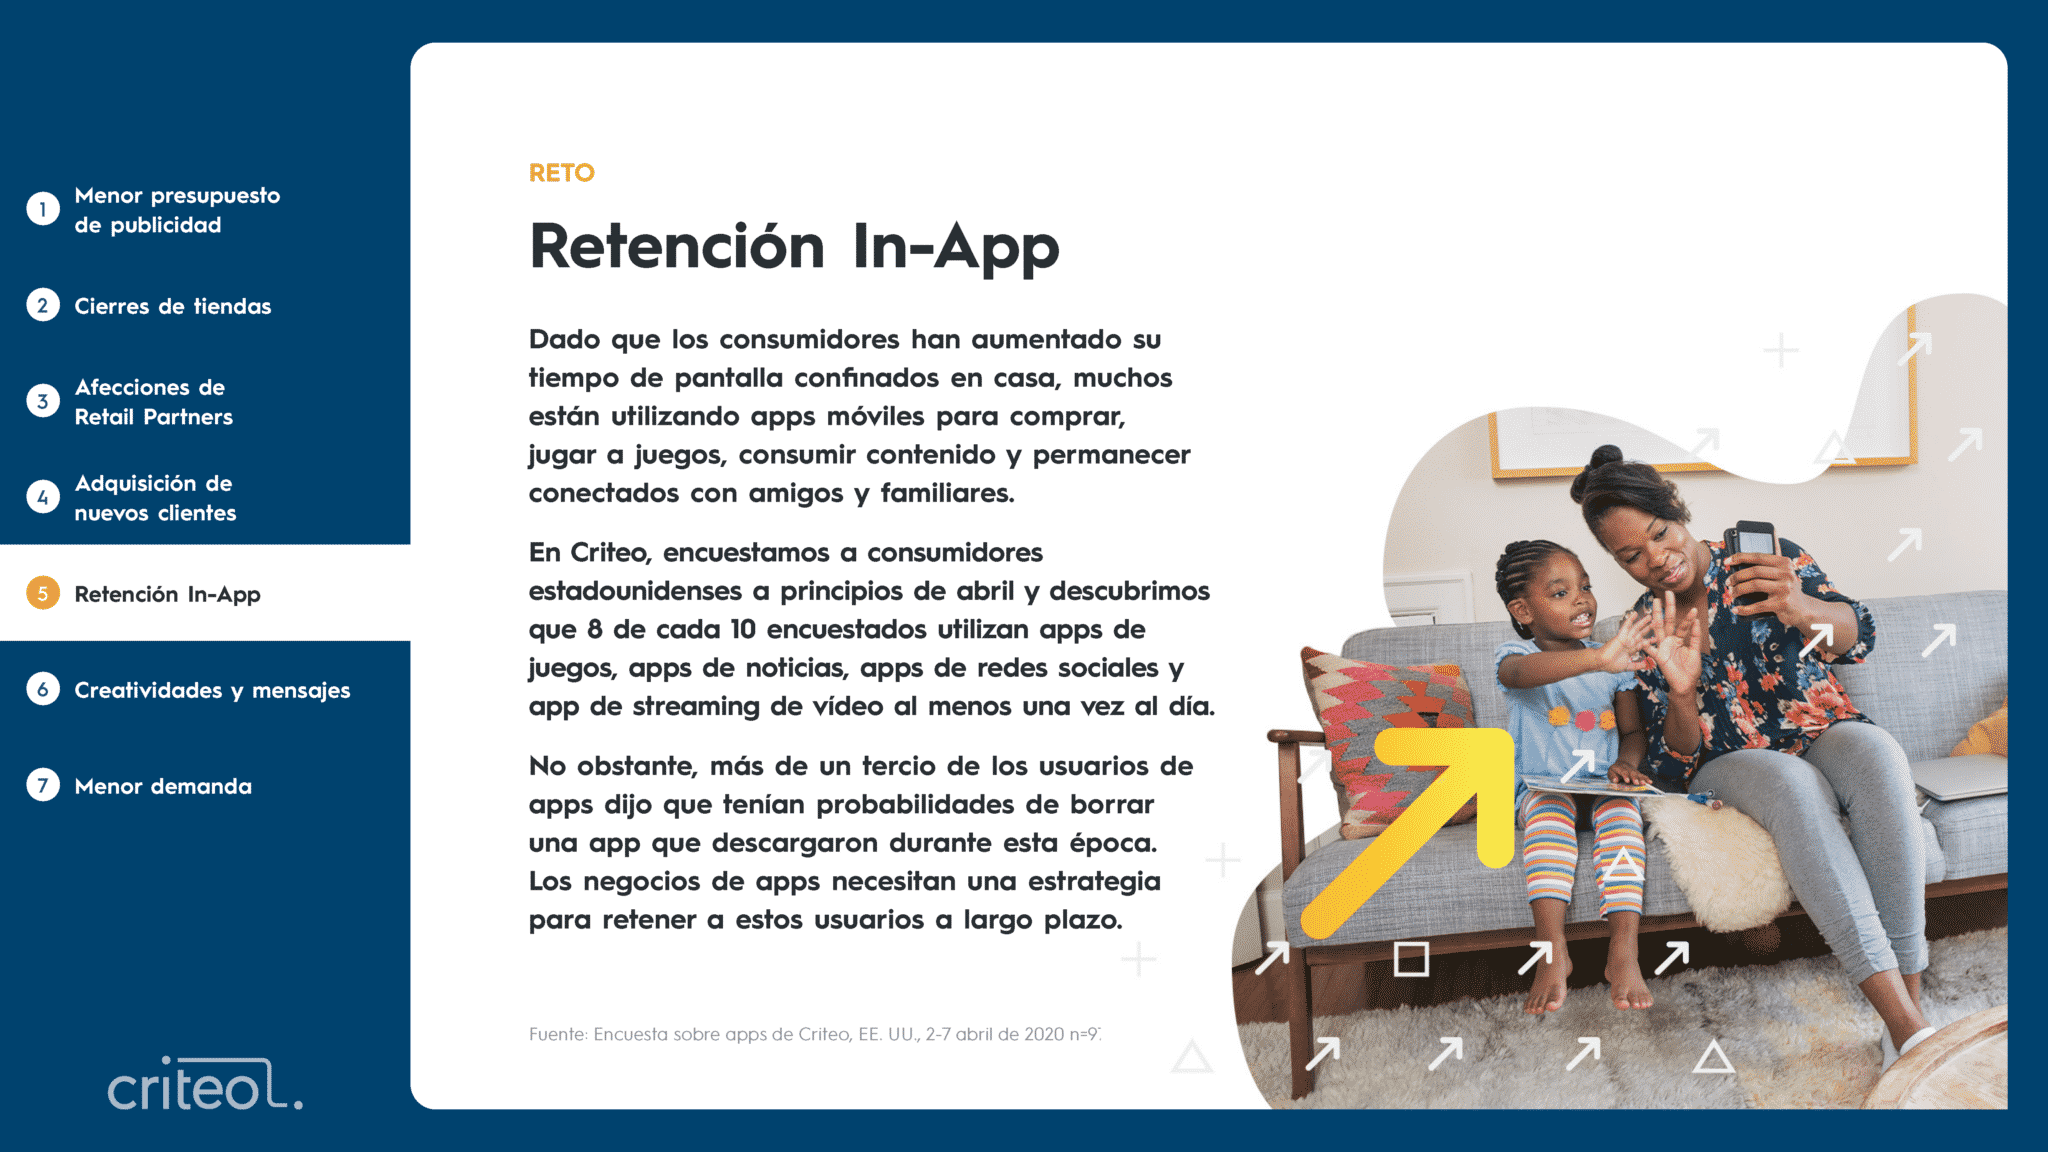 Challenge: App Retention. As consumers increase their screen time while they stay at home, many are using mobile apps to shop, play games, consume content, and stay connected with friends and family. At Criteo, we surveyed US consumers in early April and found that 8 out of 10 respondents are using gaming apps, news apps, social networking apps, and video-streaming apps at least once per day. However, more than one-third of app users said they would be likely to delete an app they downloaded during this time. App businesses need a strategy to retain these users for the long term.